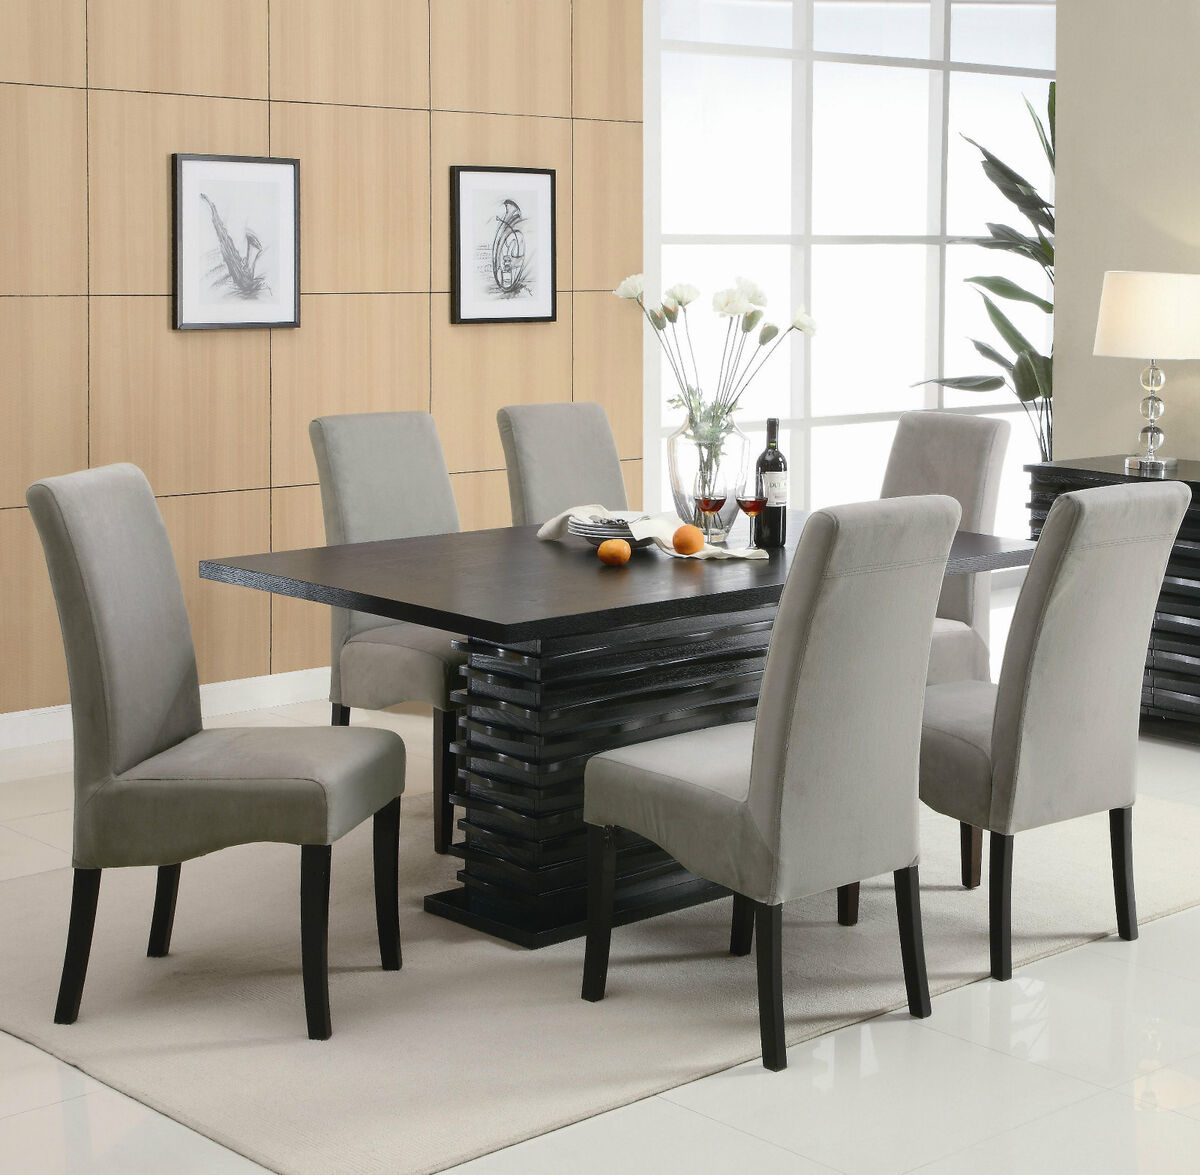 Remarkable Contemporary Dining Table Sets 1200 x 1175 · 161 kB · jpeg